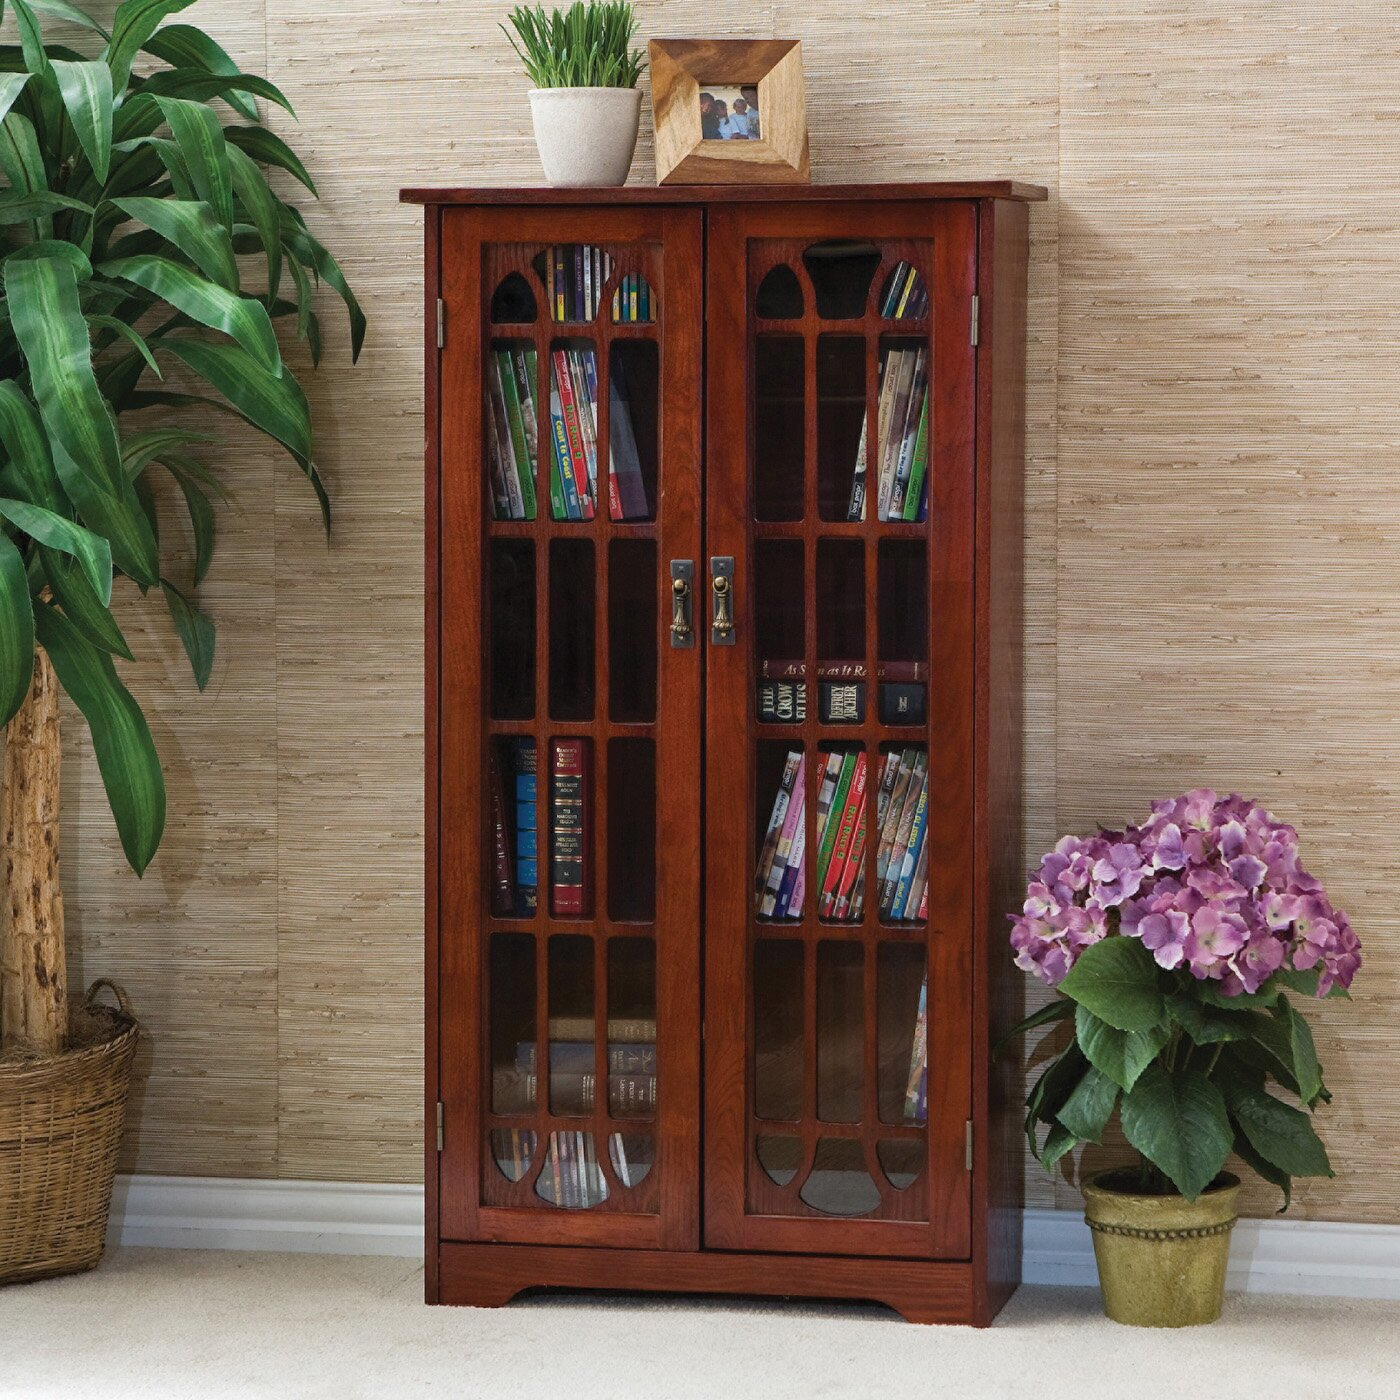 Darby Home Co Window Pane Multimedia Cabinet & Reviews